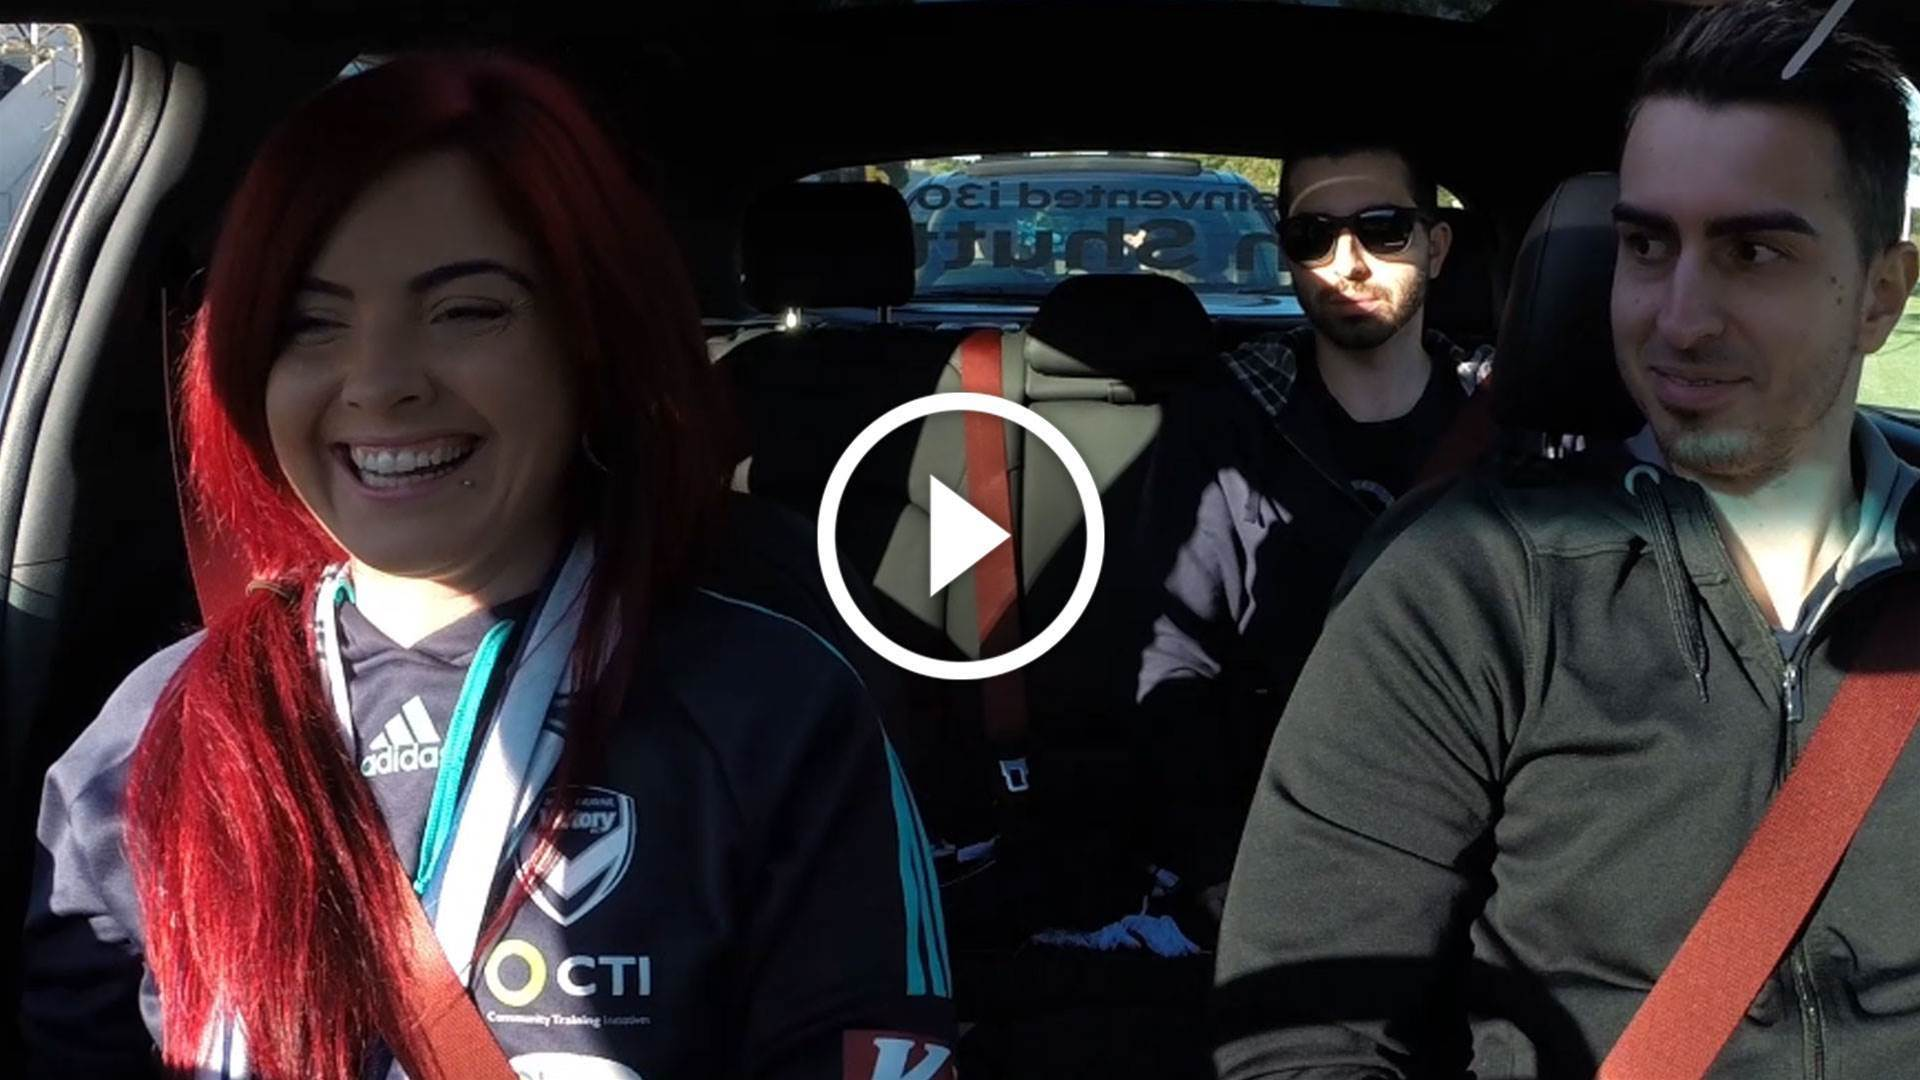 15 fans, Grand Final tickets, 880km and the ride of their lives